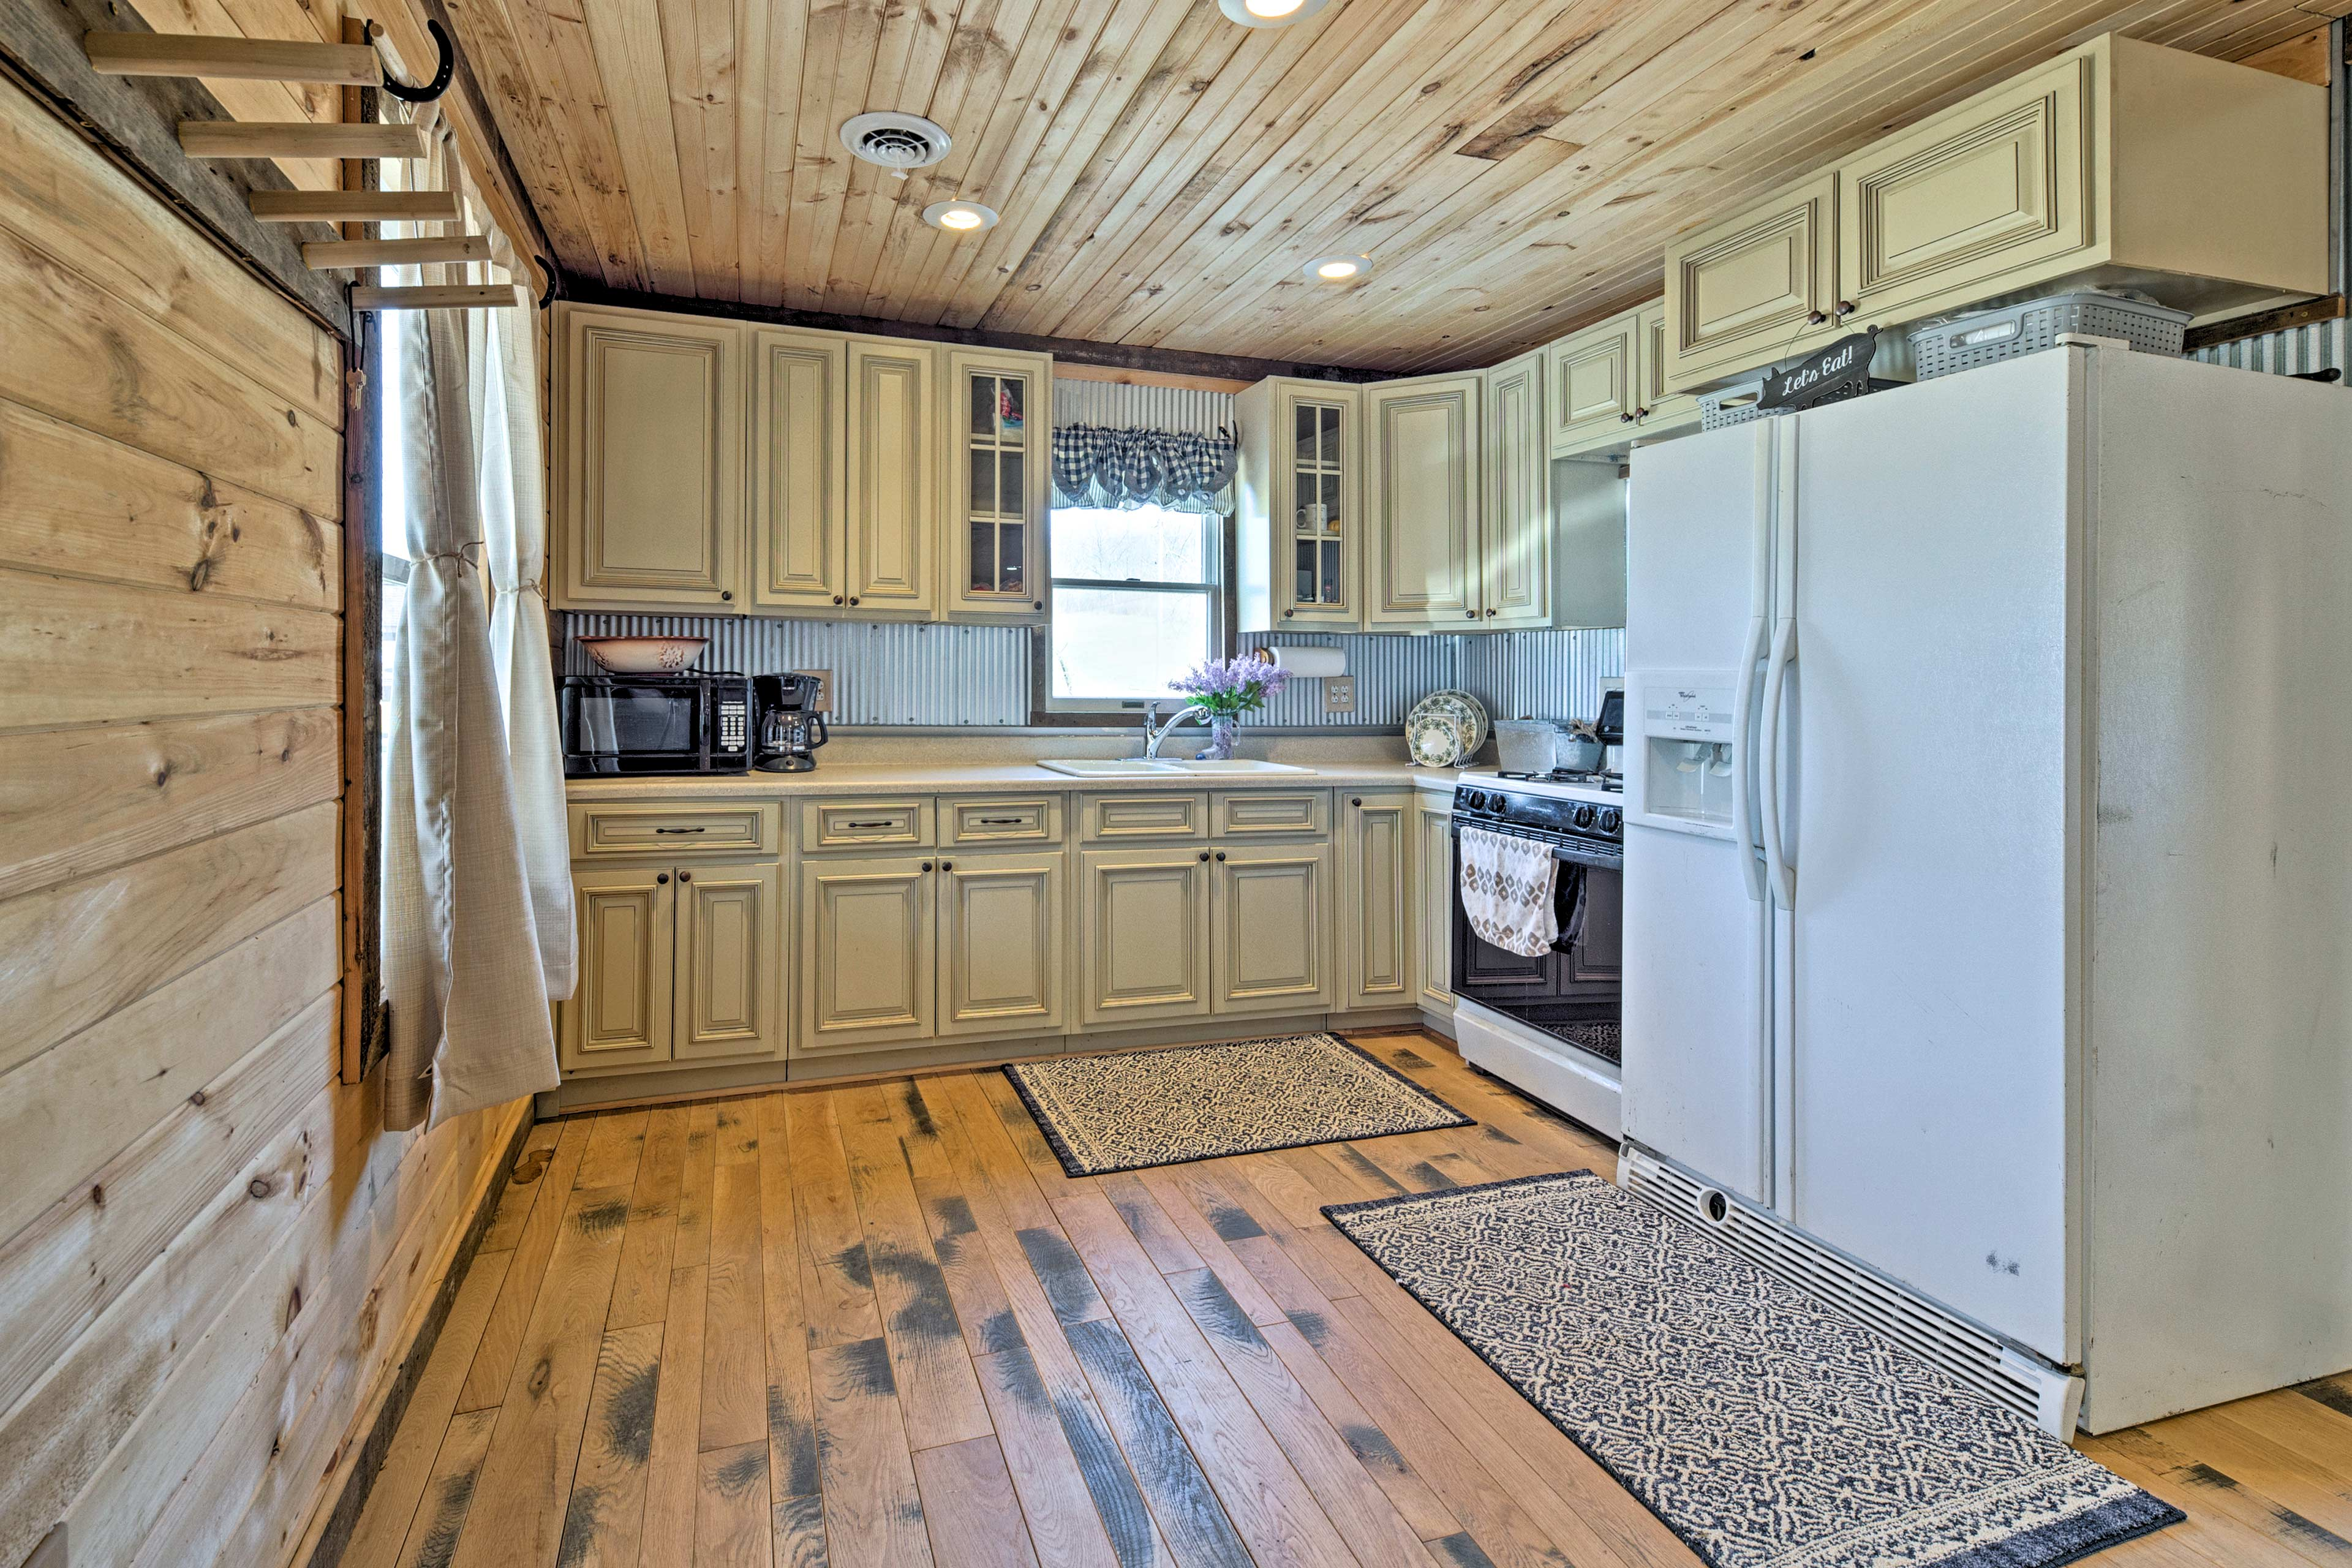 Whip up a delicious home-cooked meal in the fully equipped kitchen!